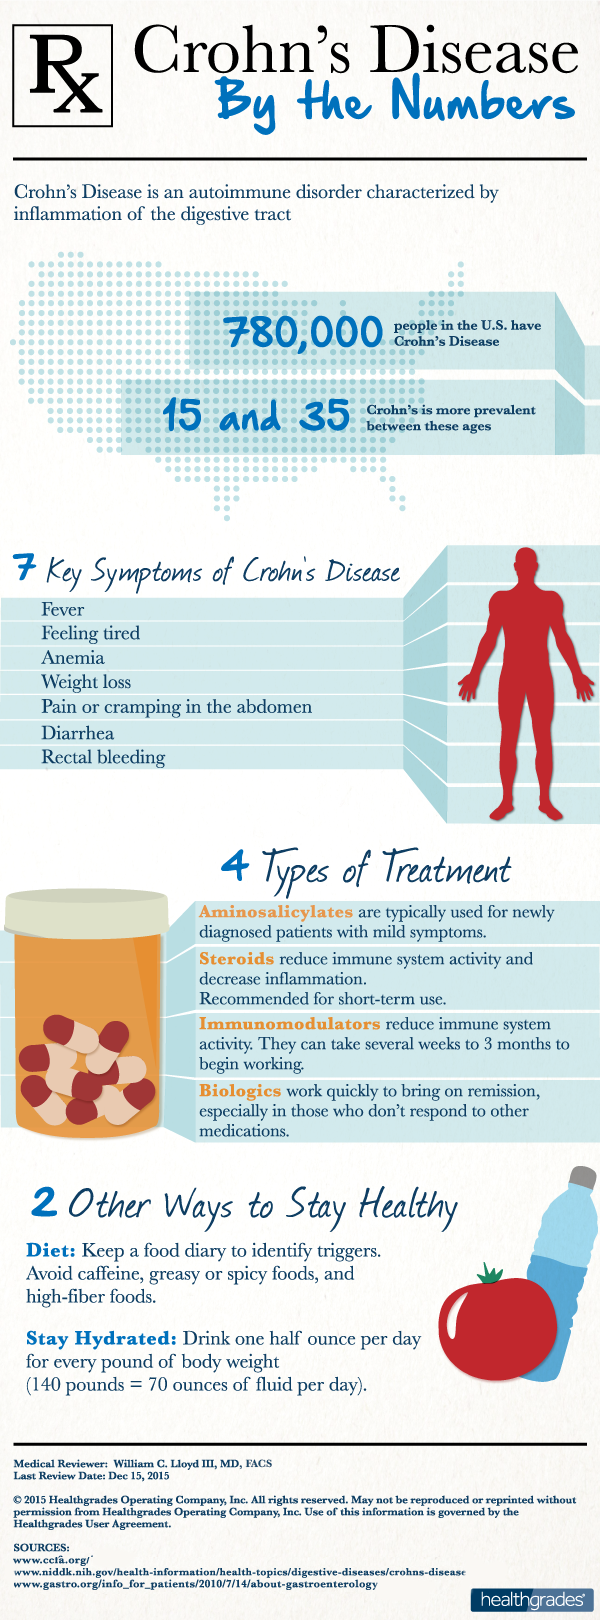 Crohn's By the Numbers